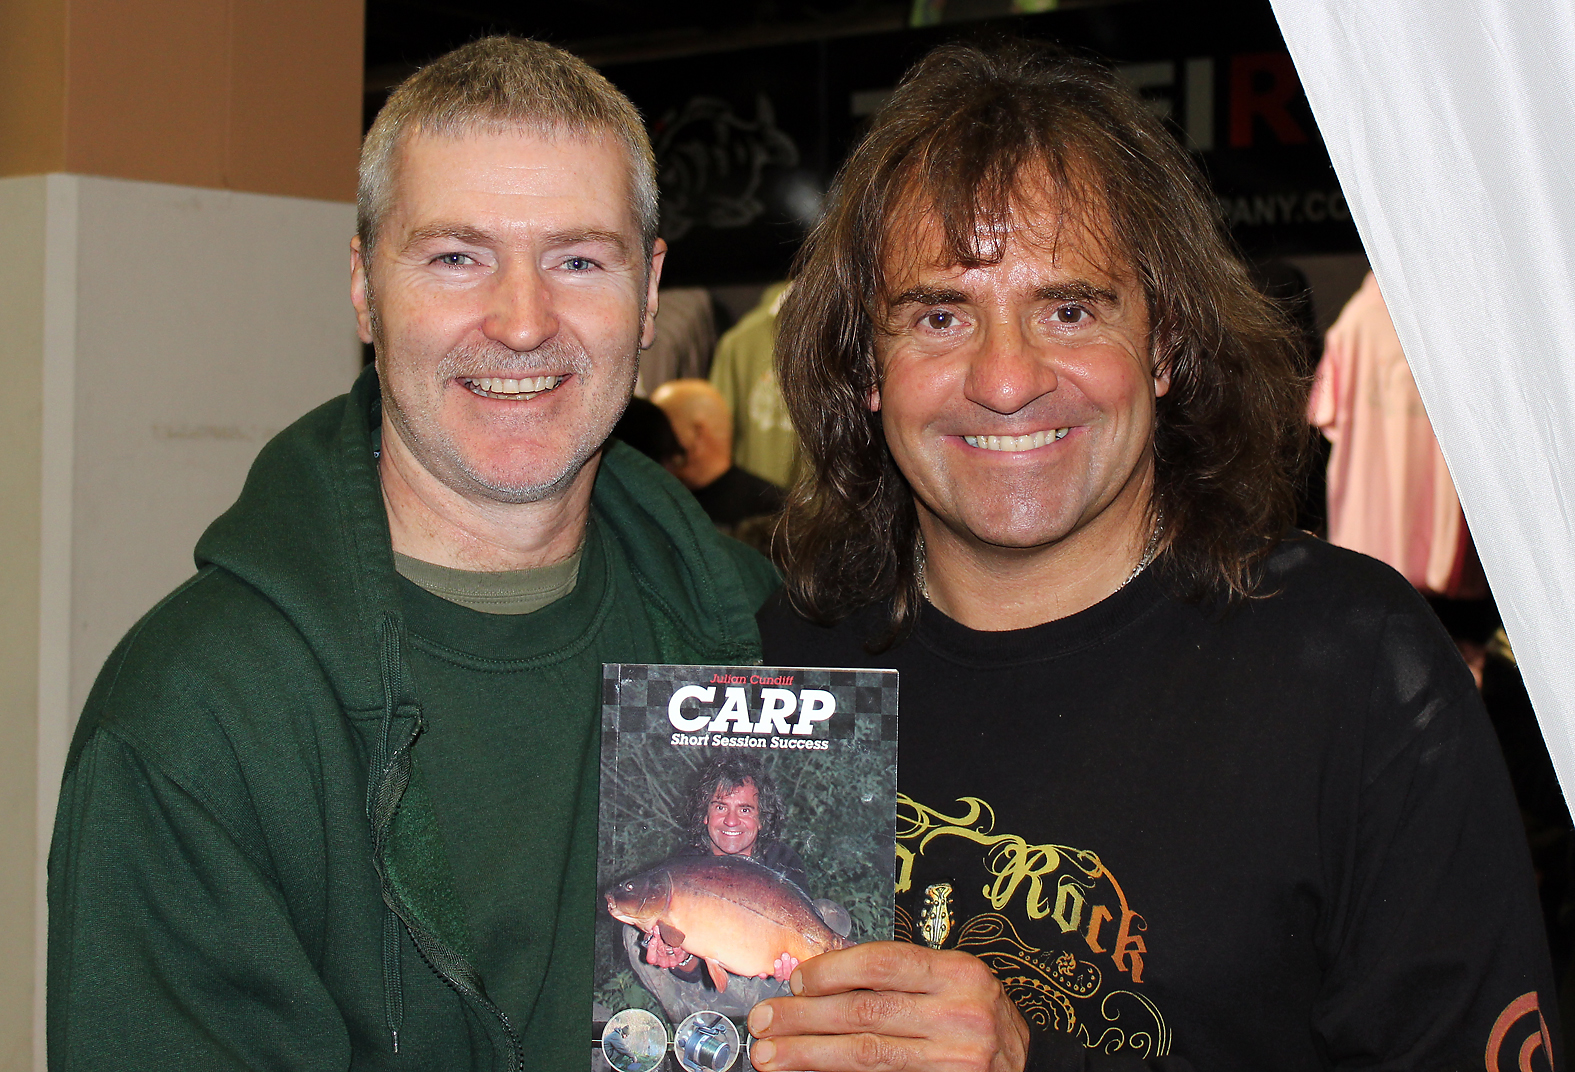 We were supposed to talk about the book not rock music! Julian Cundiff with his new book